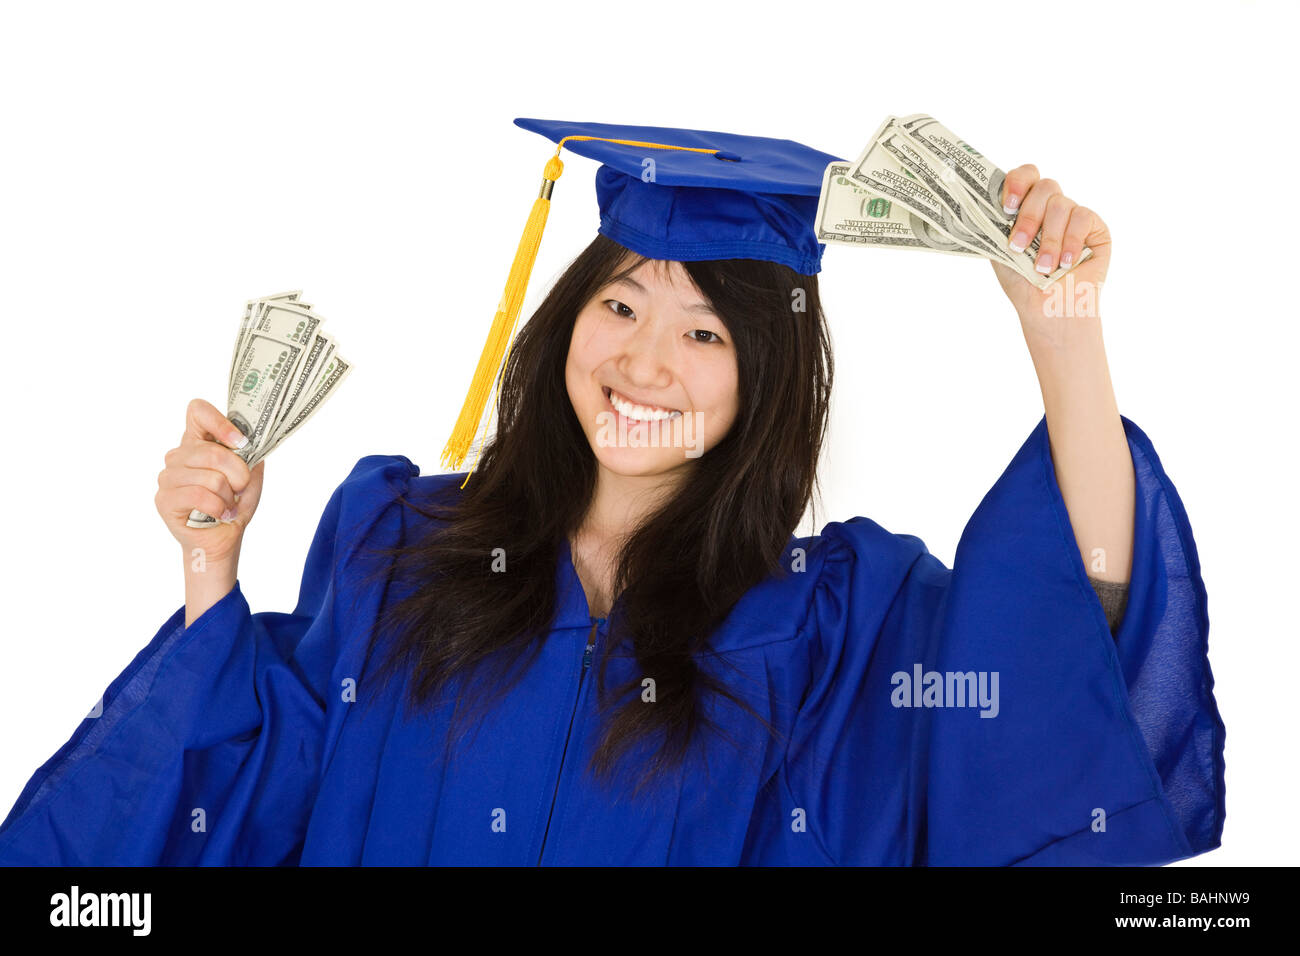 An Asian Teenager In A Graduation Gown Smiling While Holding Money ...